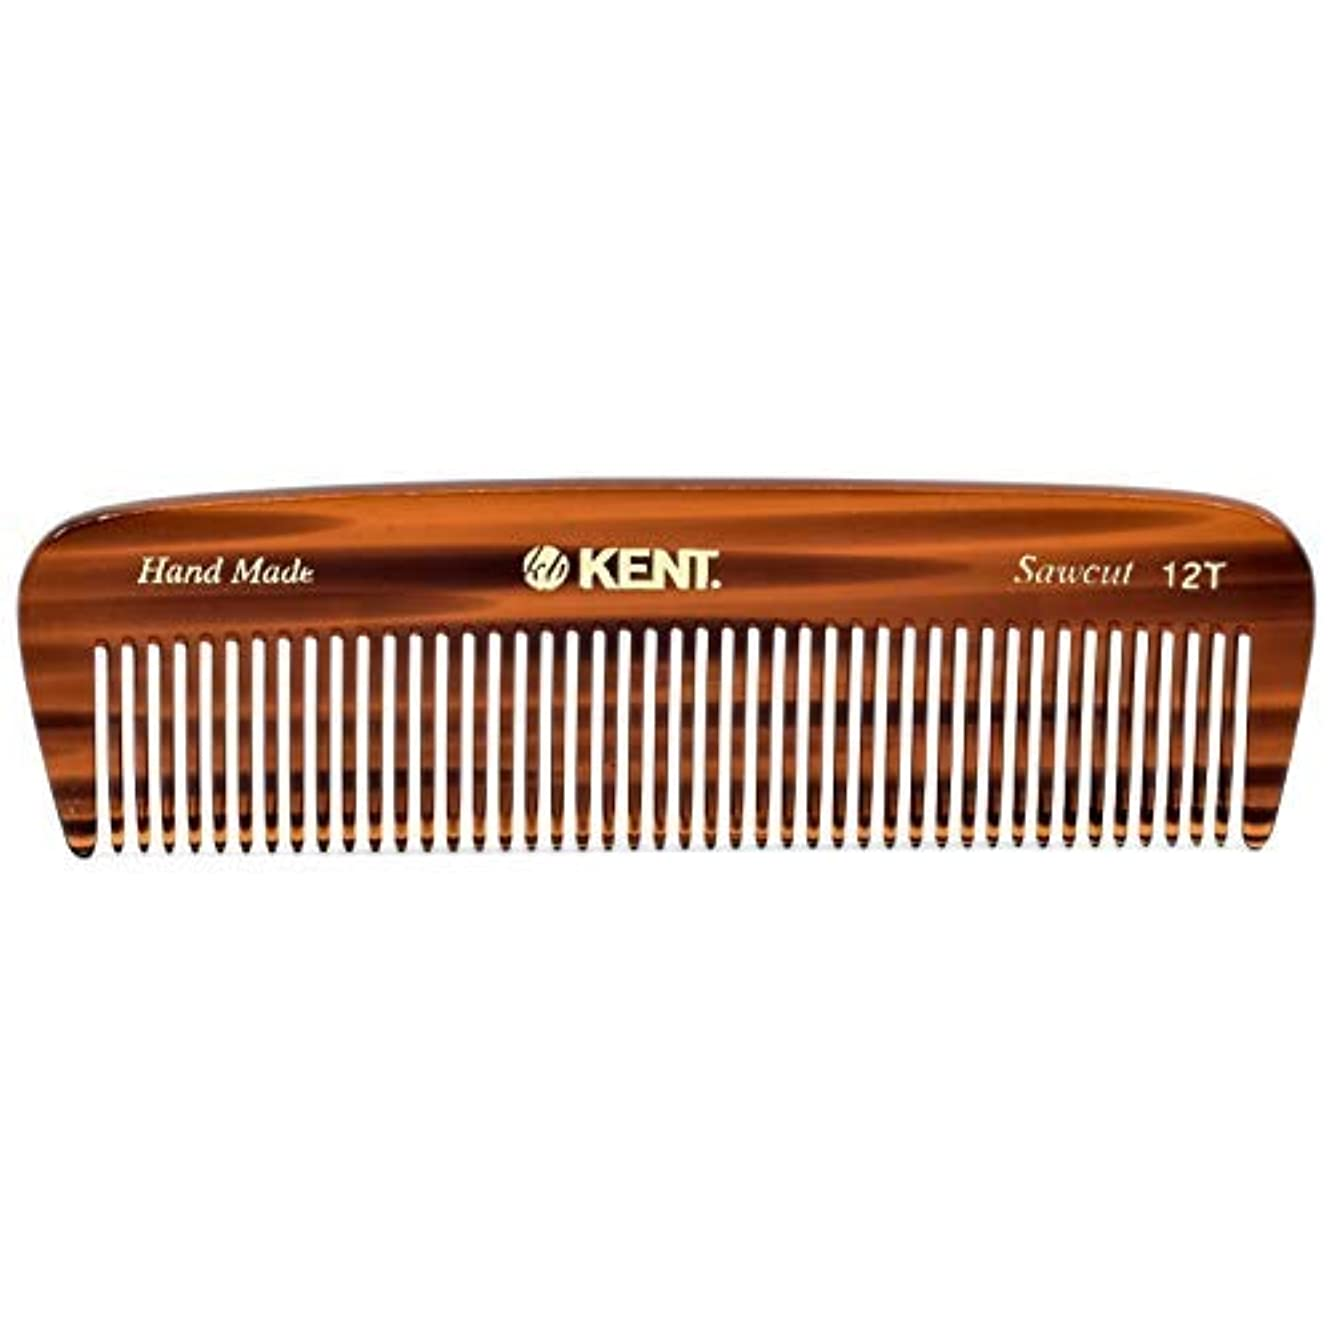 Kent 12T Handmade Medium Size Teeth for Thick/Coarse Hair Comb for Men/Women - For Grooming, Styling, and Detangling...